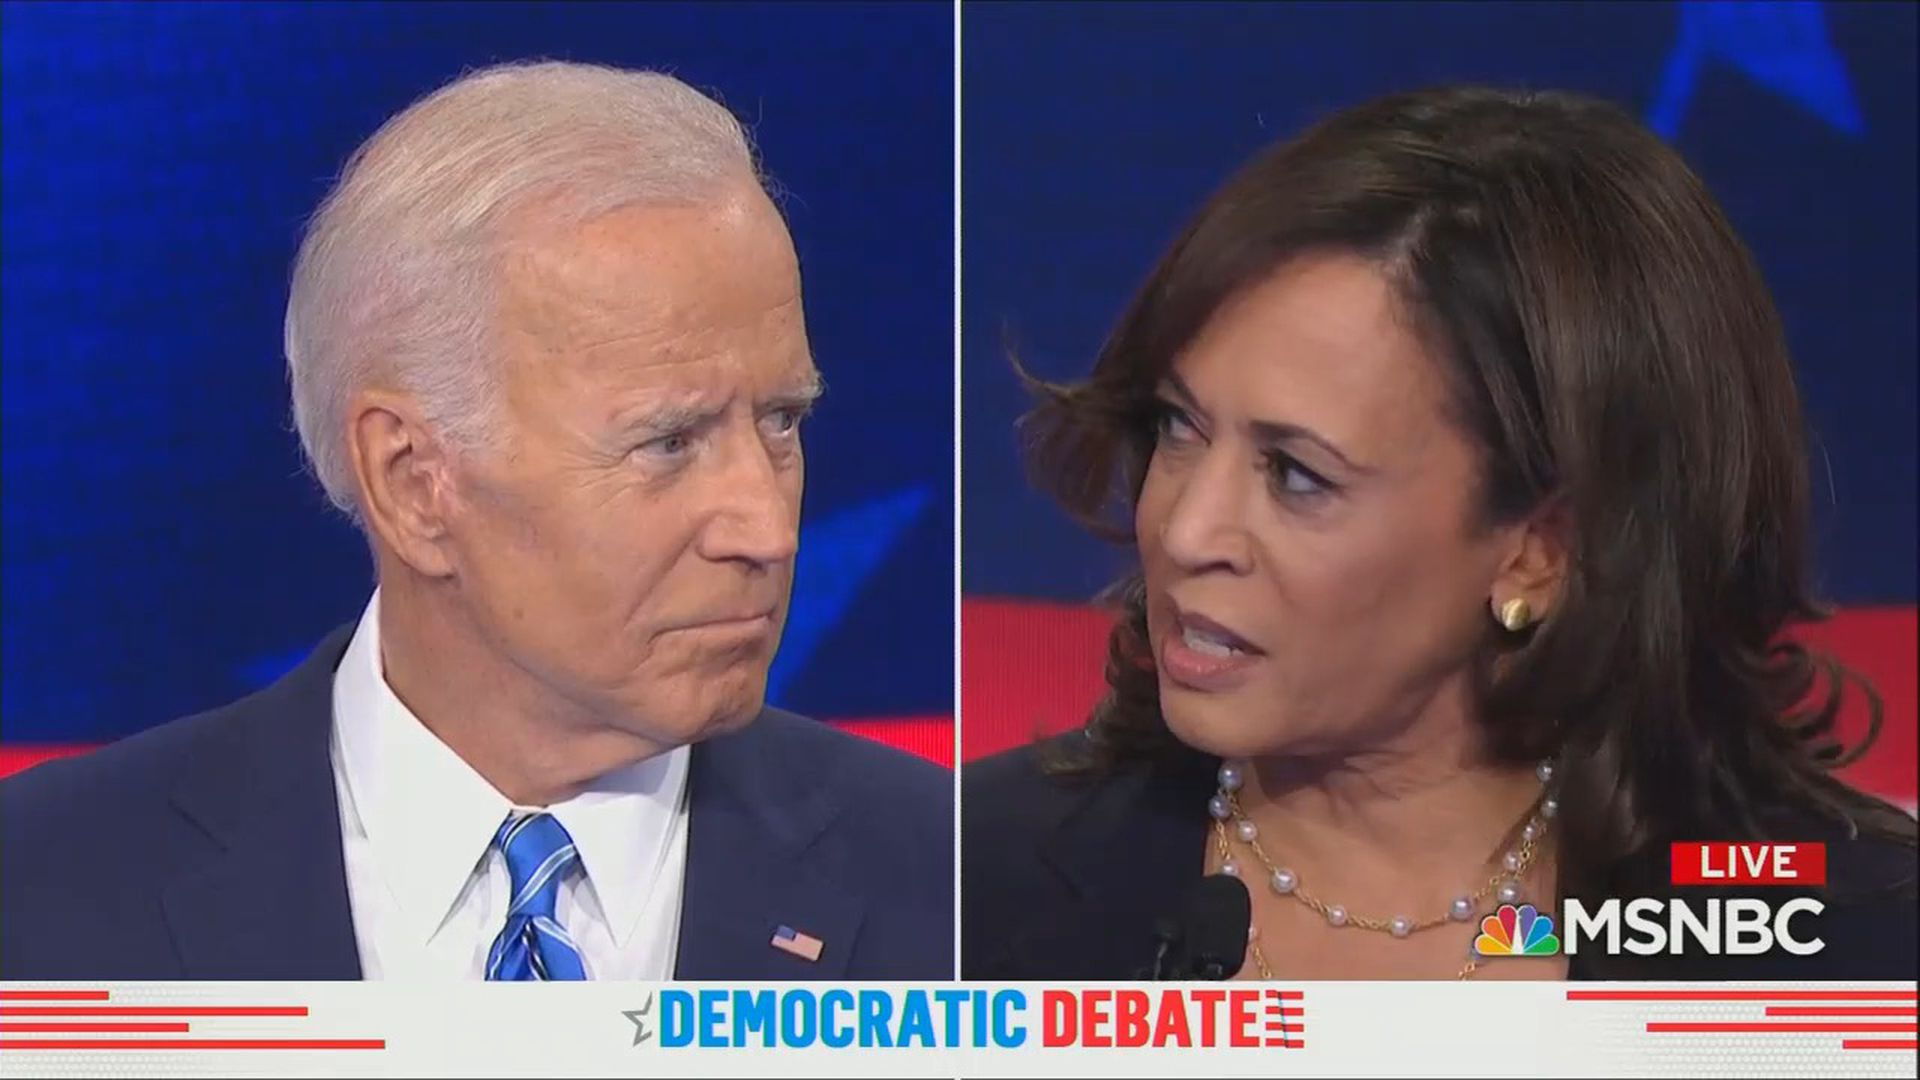 split-screen capture of Joe Biden and Kamala Harris from debate